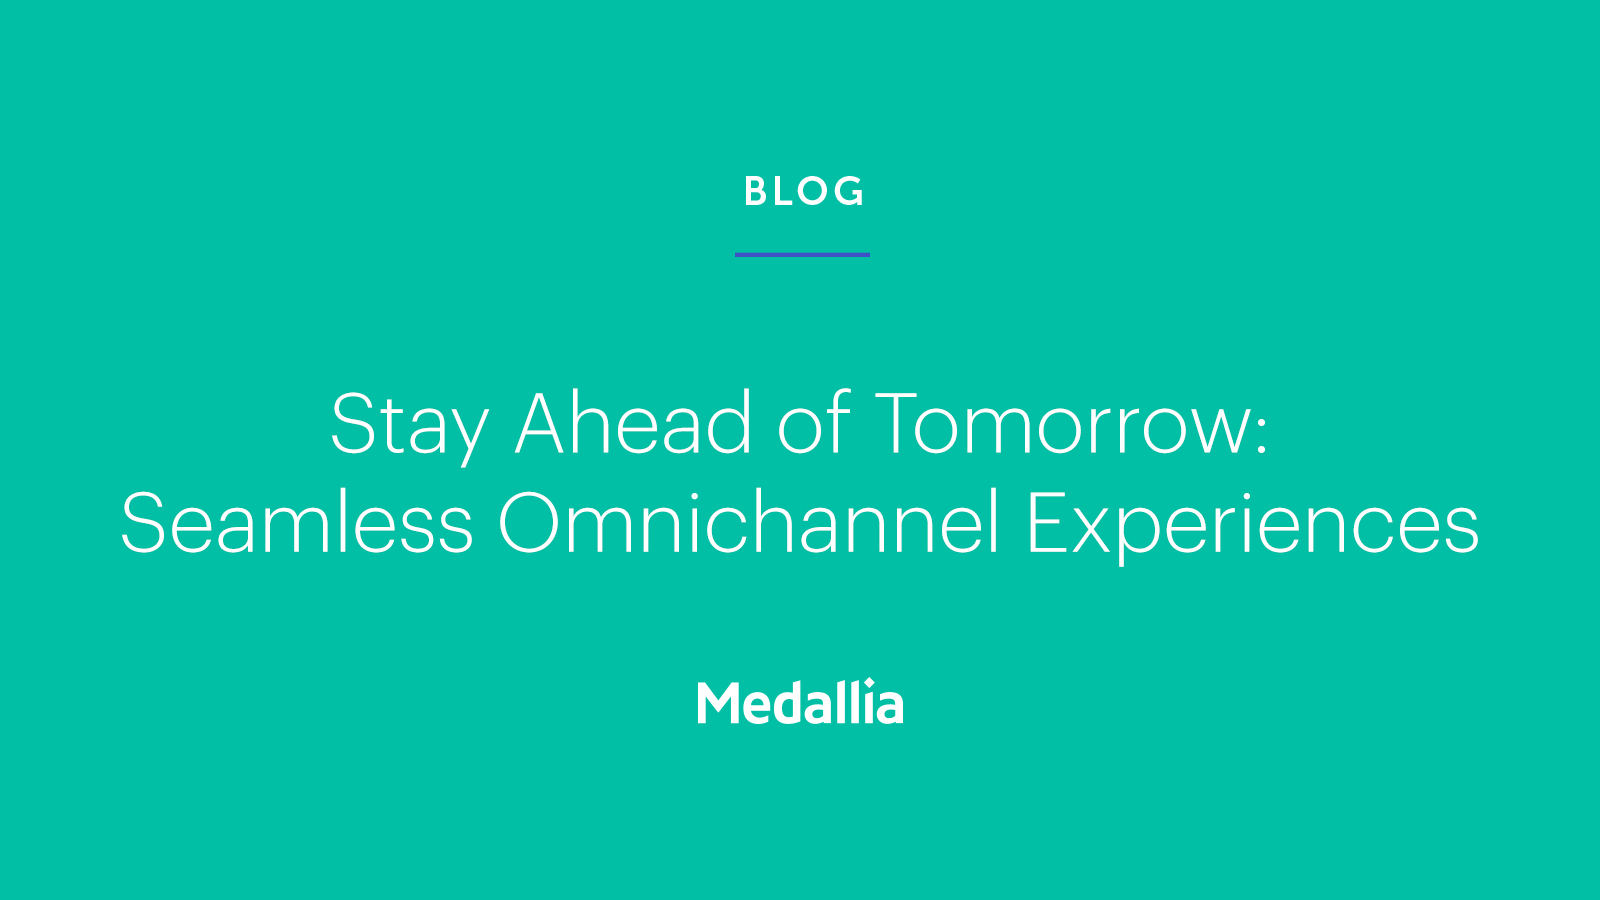 A Seamless Omnichannel Experience